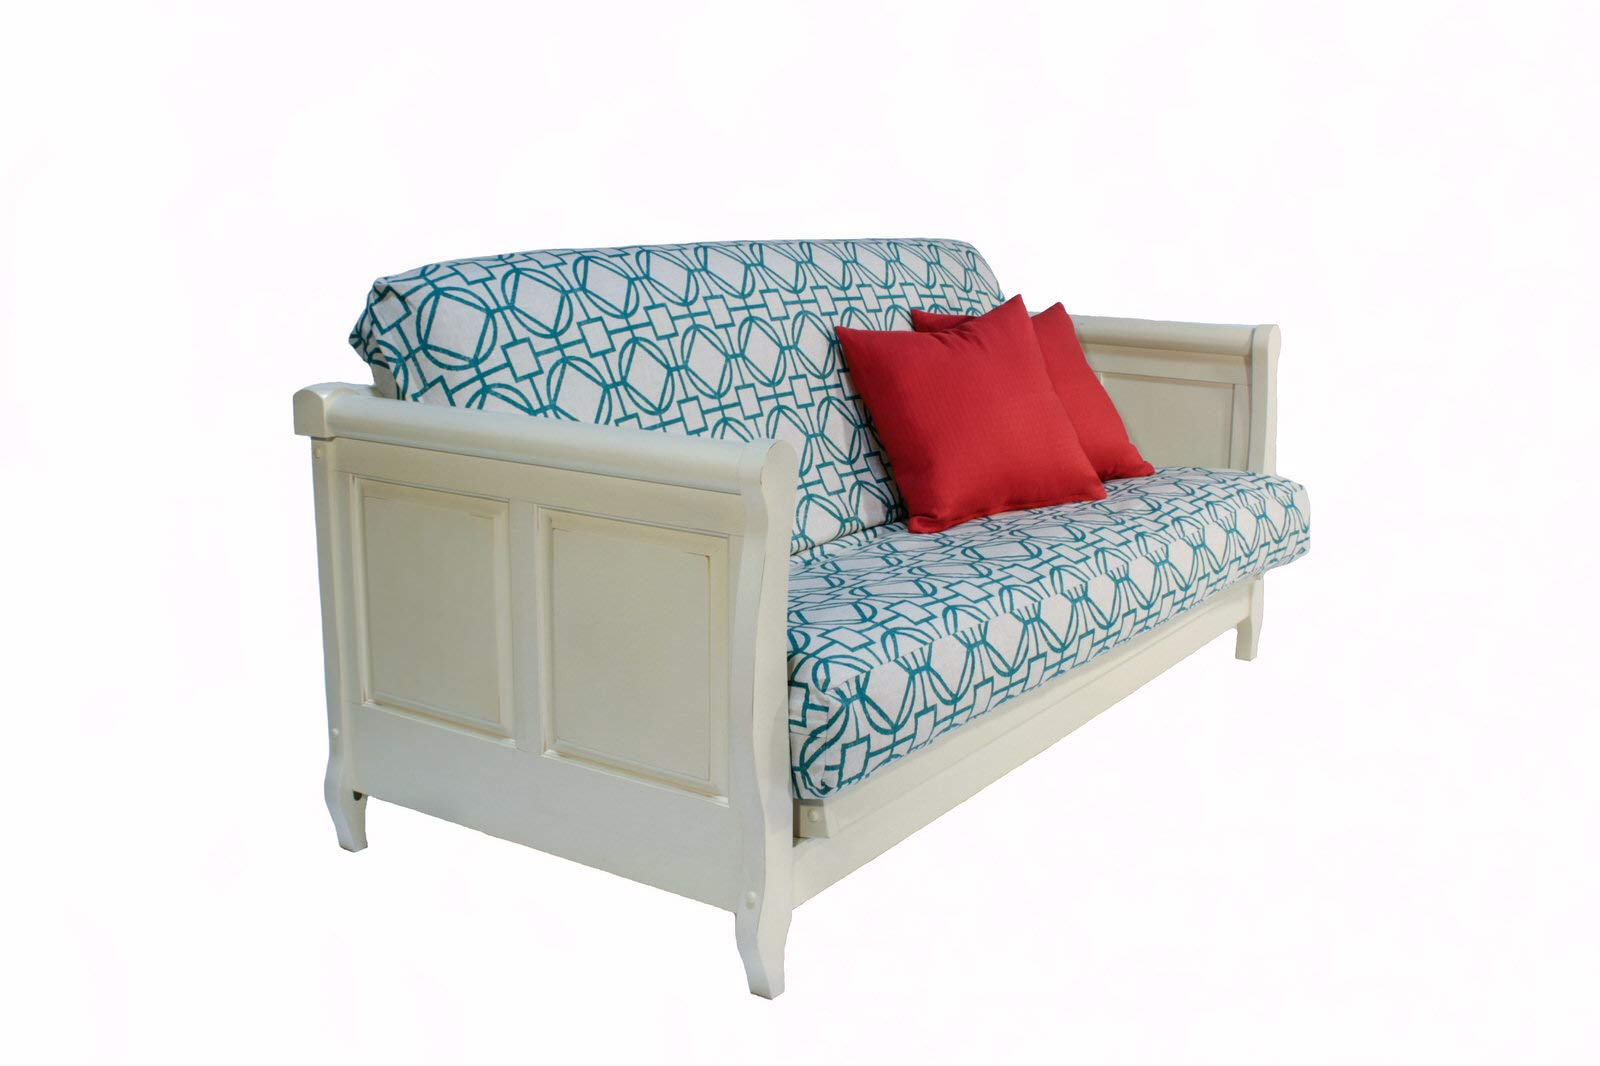 Adriana Antique Full Wall Hugger Futon Frame by Strata Furniture by Strata Furniture